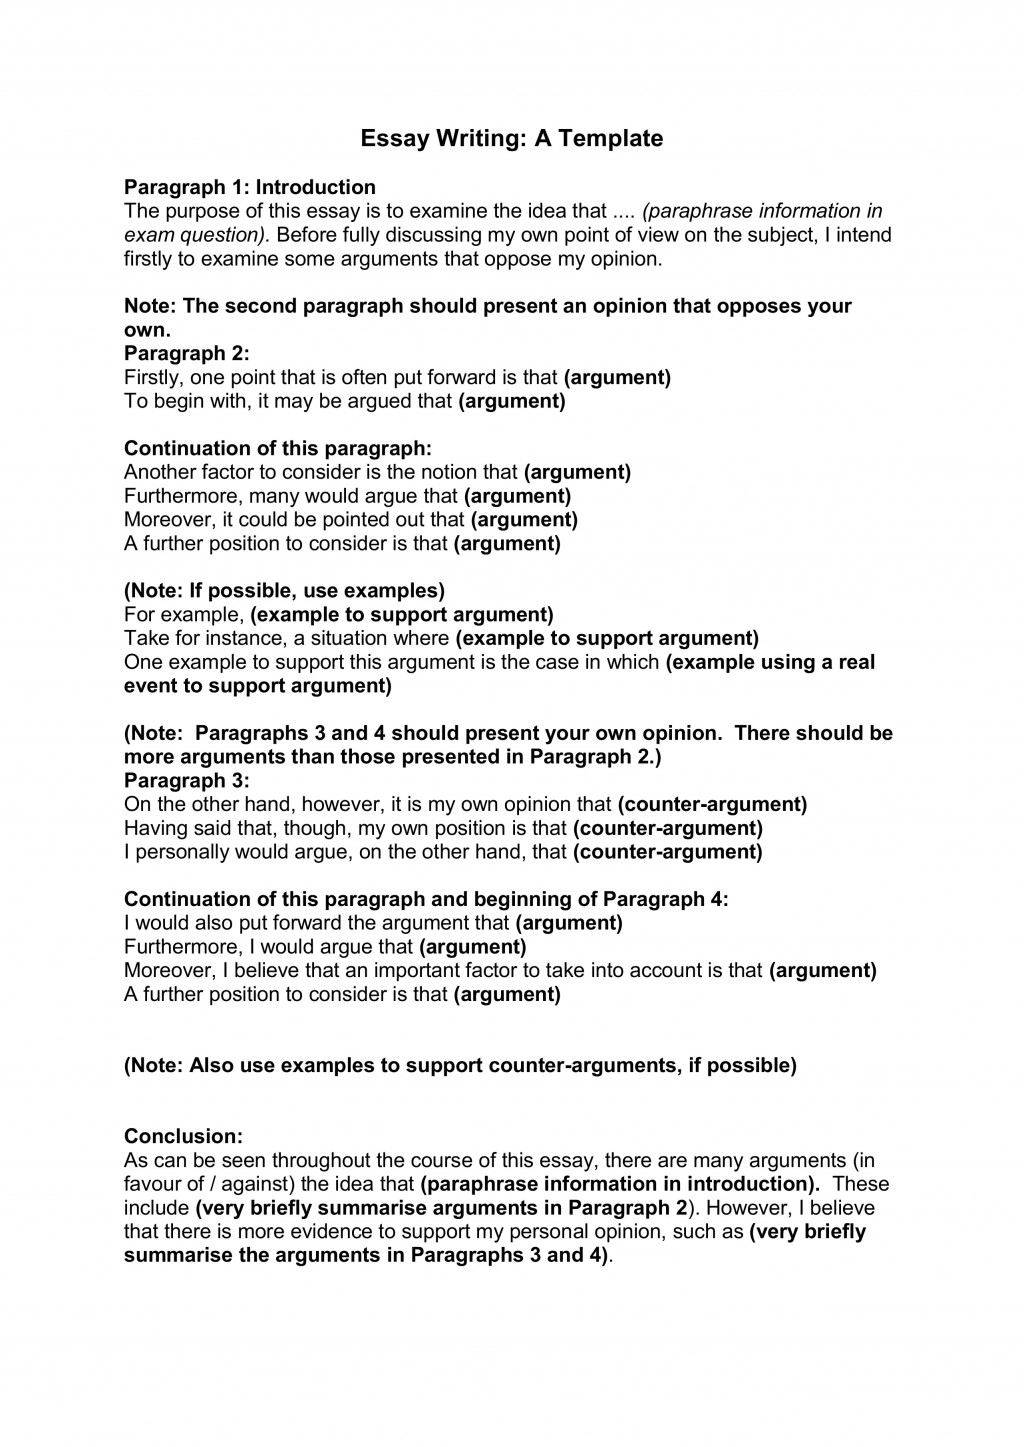 001 Essay Example Writing Template For Part Toefl Sensational Samples Sample Answers Templates Pdf Structure Large